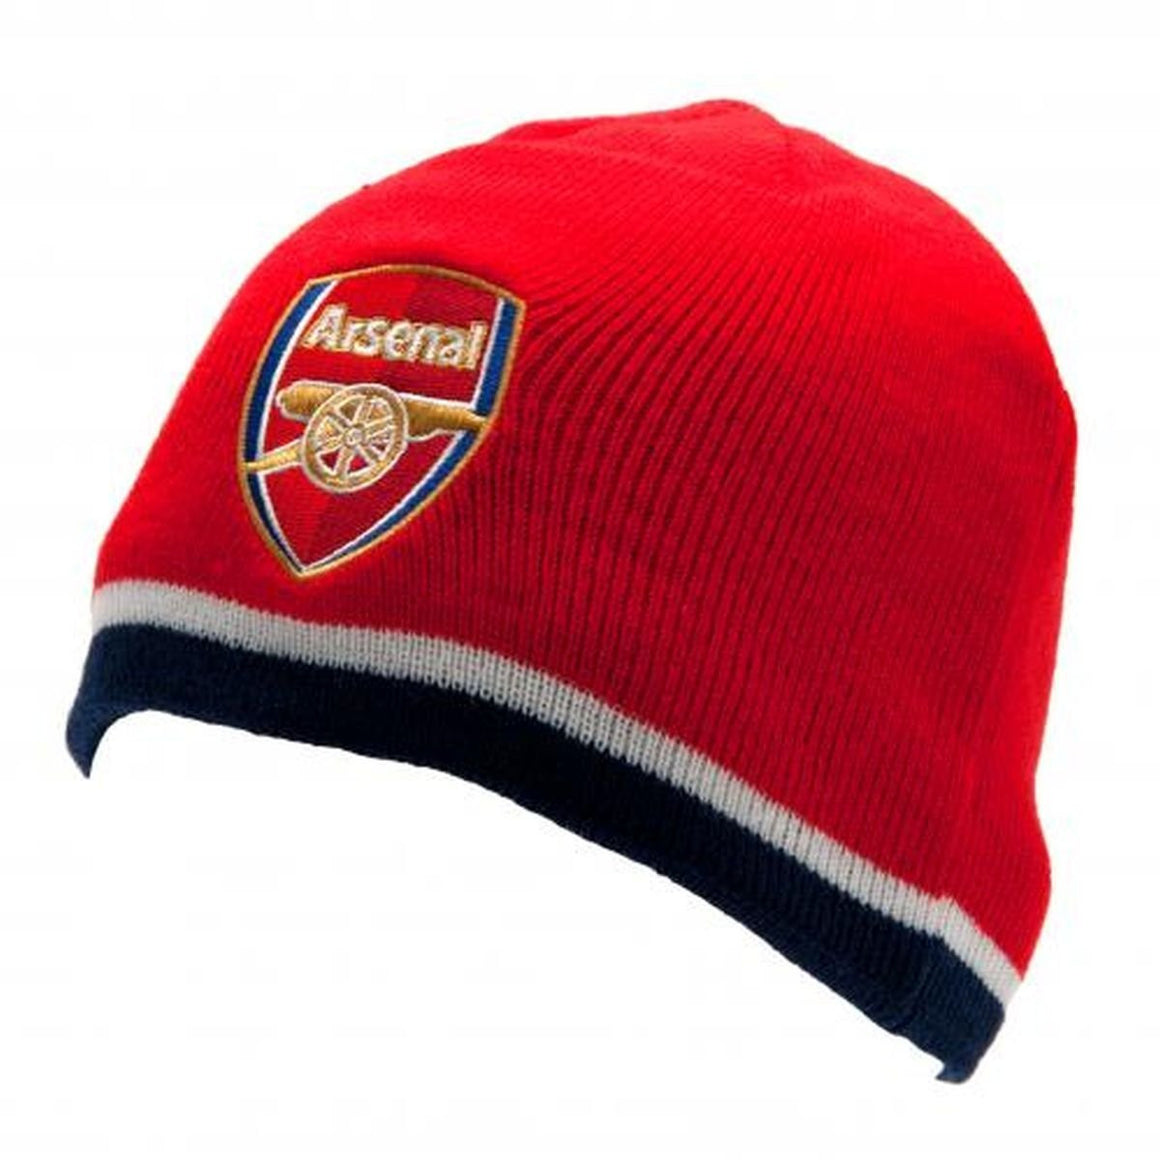 Arsenal FC Knit Hat